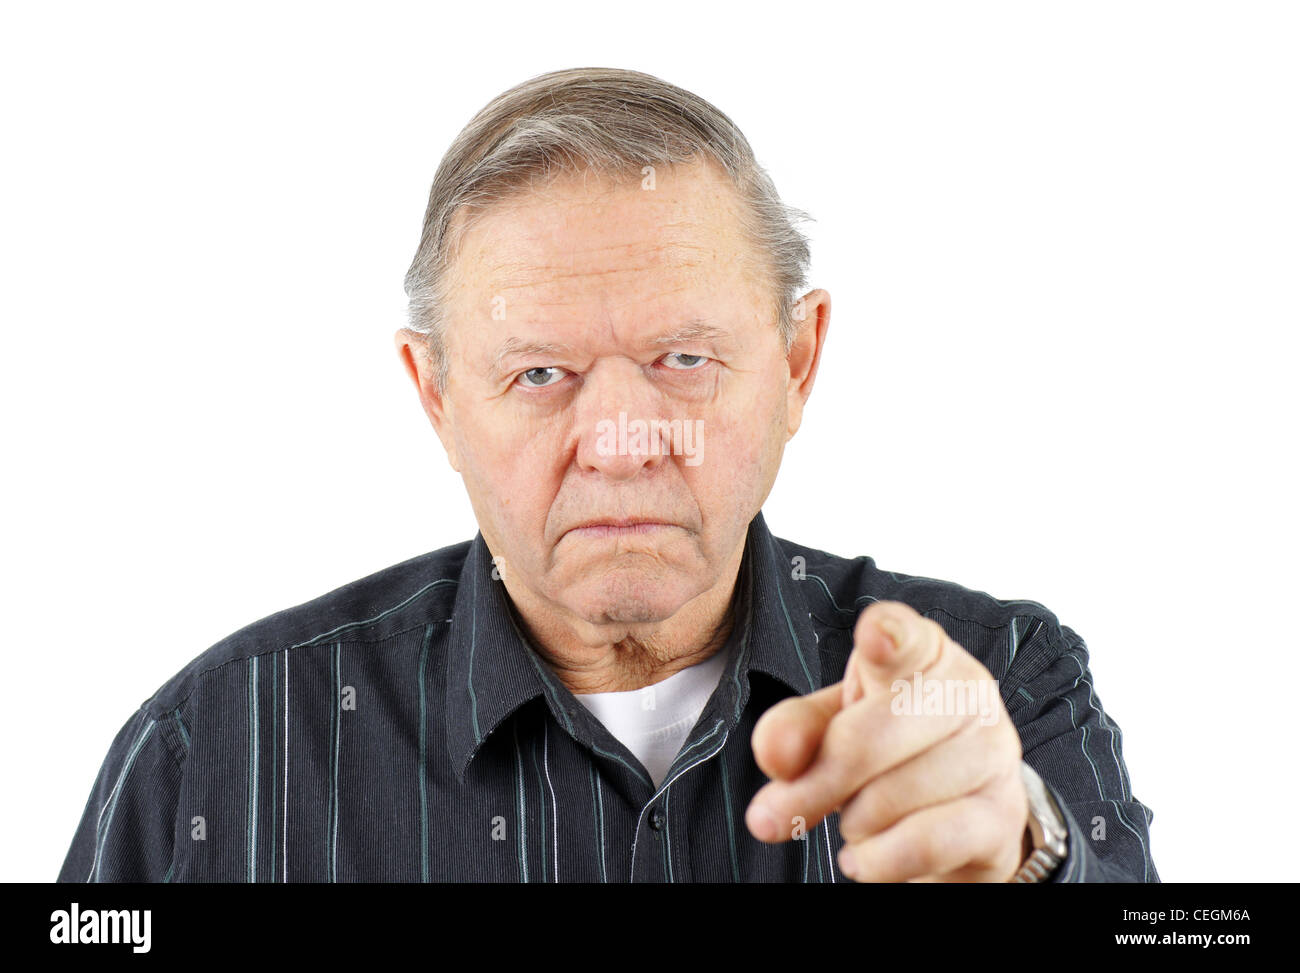 Grumpy Angry Senior Or Old Man Pointing His Finger At The Camera